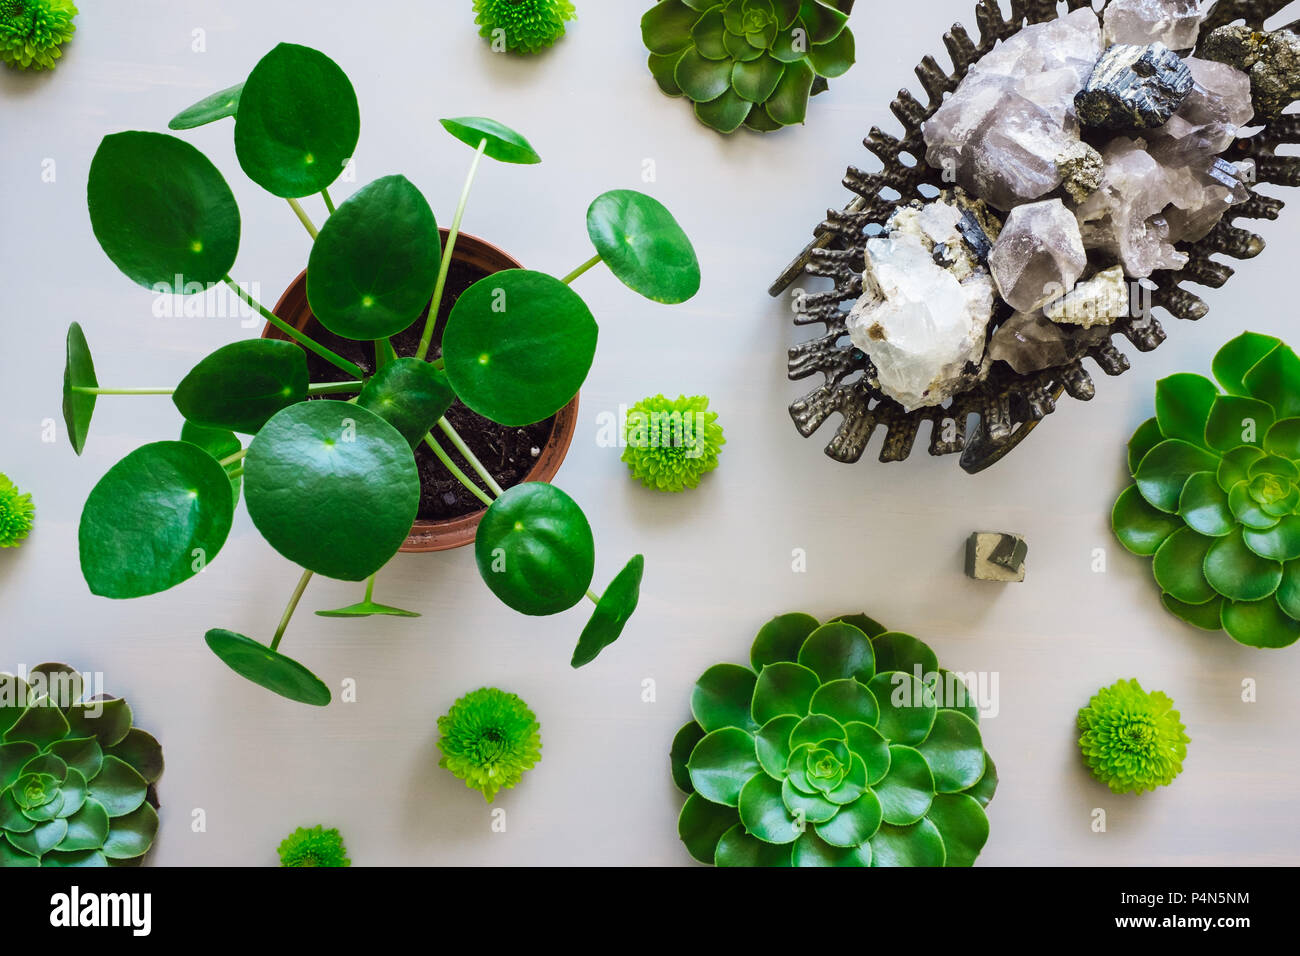 Pilea Plant, Succulents and Chrysanthemums Arranged with Antique Vessel Containing Quarts, Flourite, Black Tourmaline, Pyrite and Mica Stock Photo